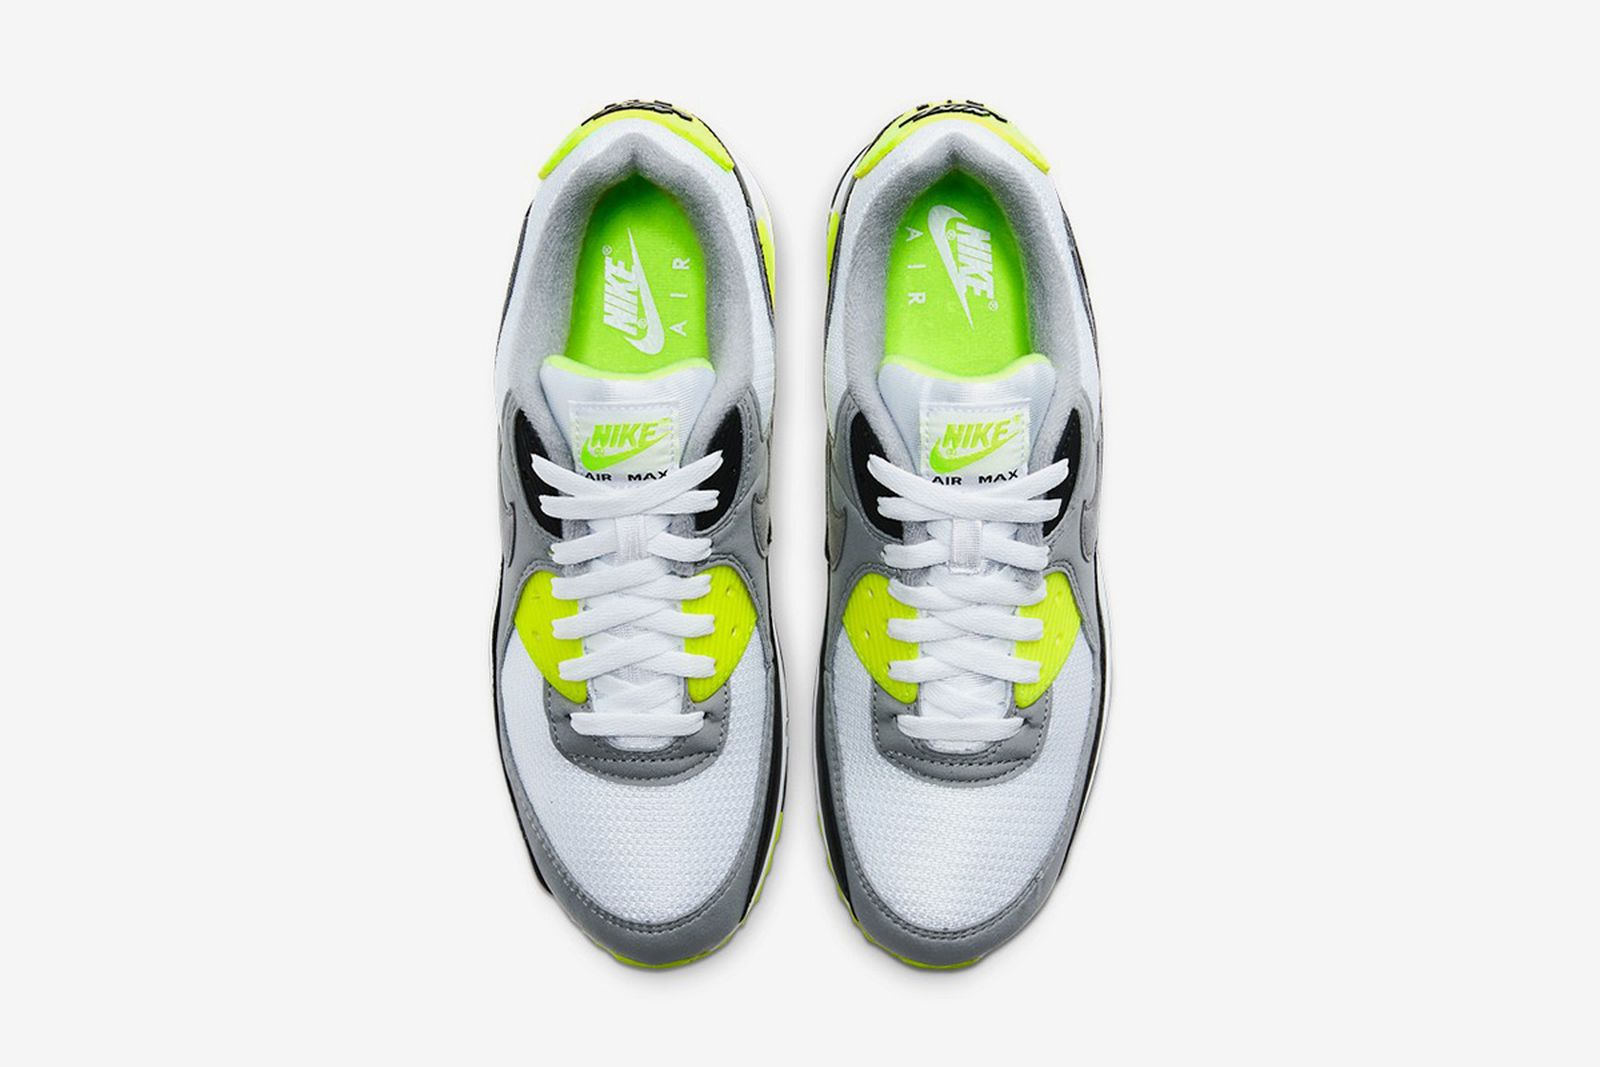 nike-air-max-90-30th-anniversary-colorways-release-date-price-1-14